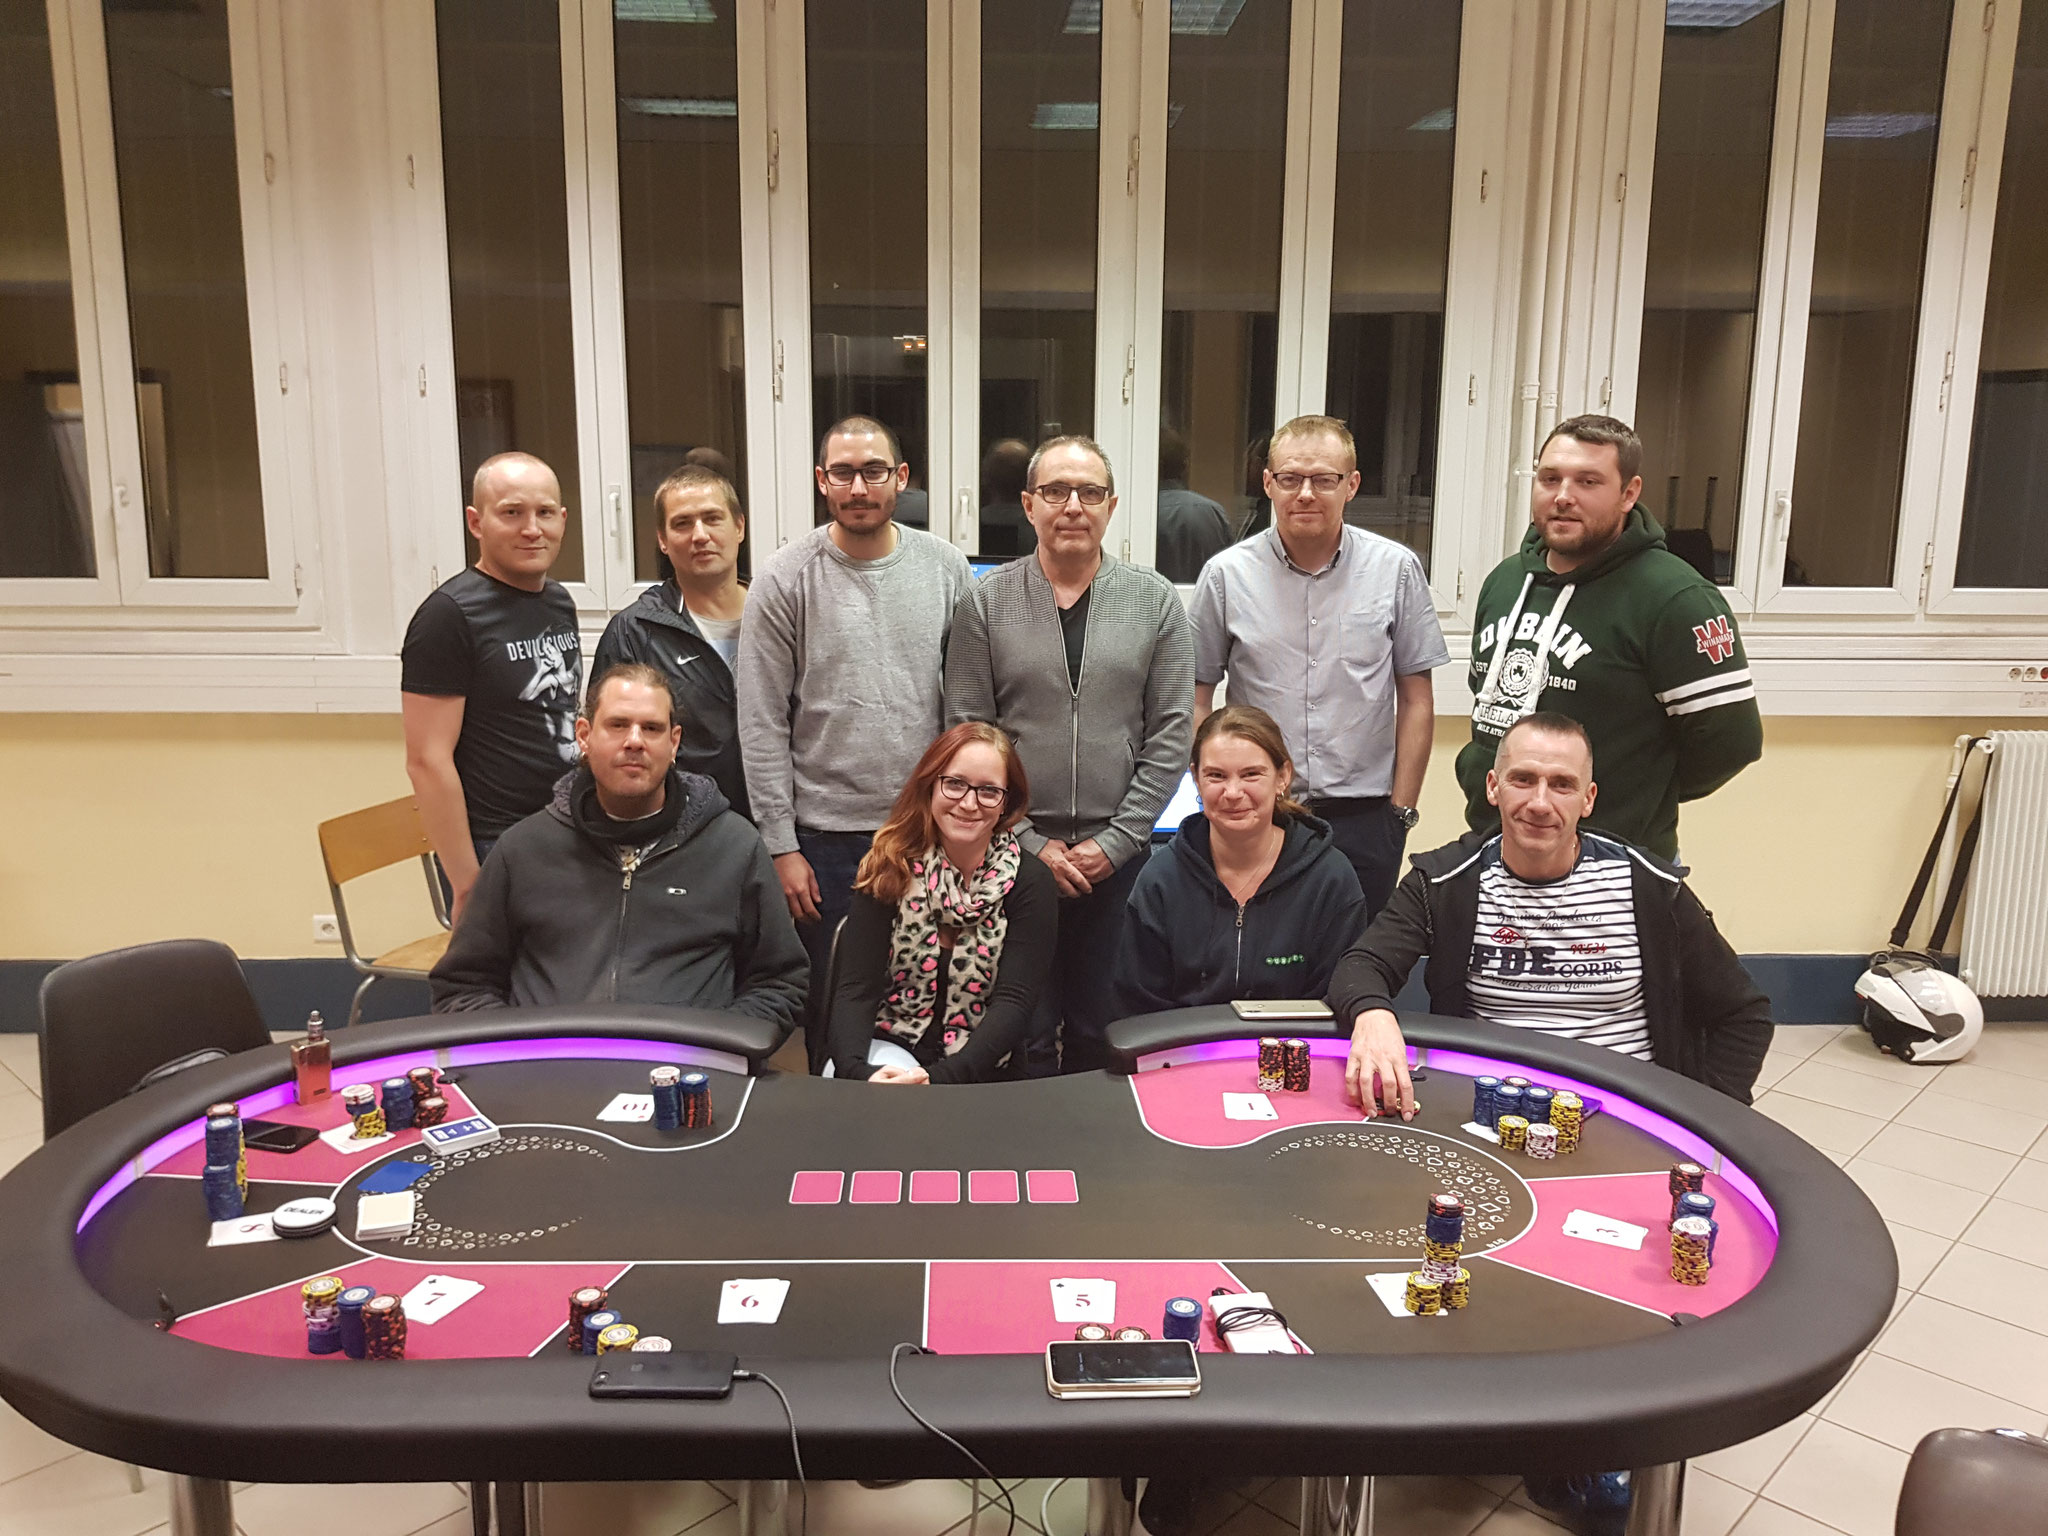 MTT01 14/09/2019 --- Winner LOUVE --- Runner-Up ALEX --- Podium GRINCHEUX